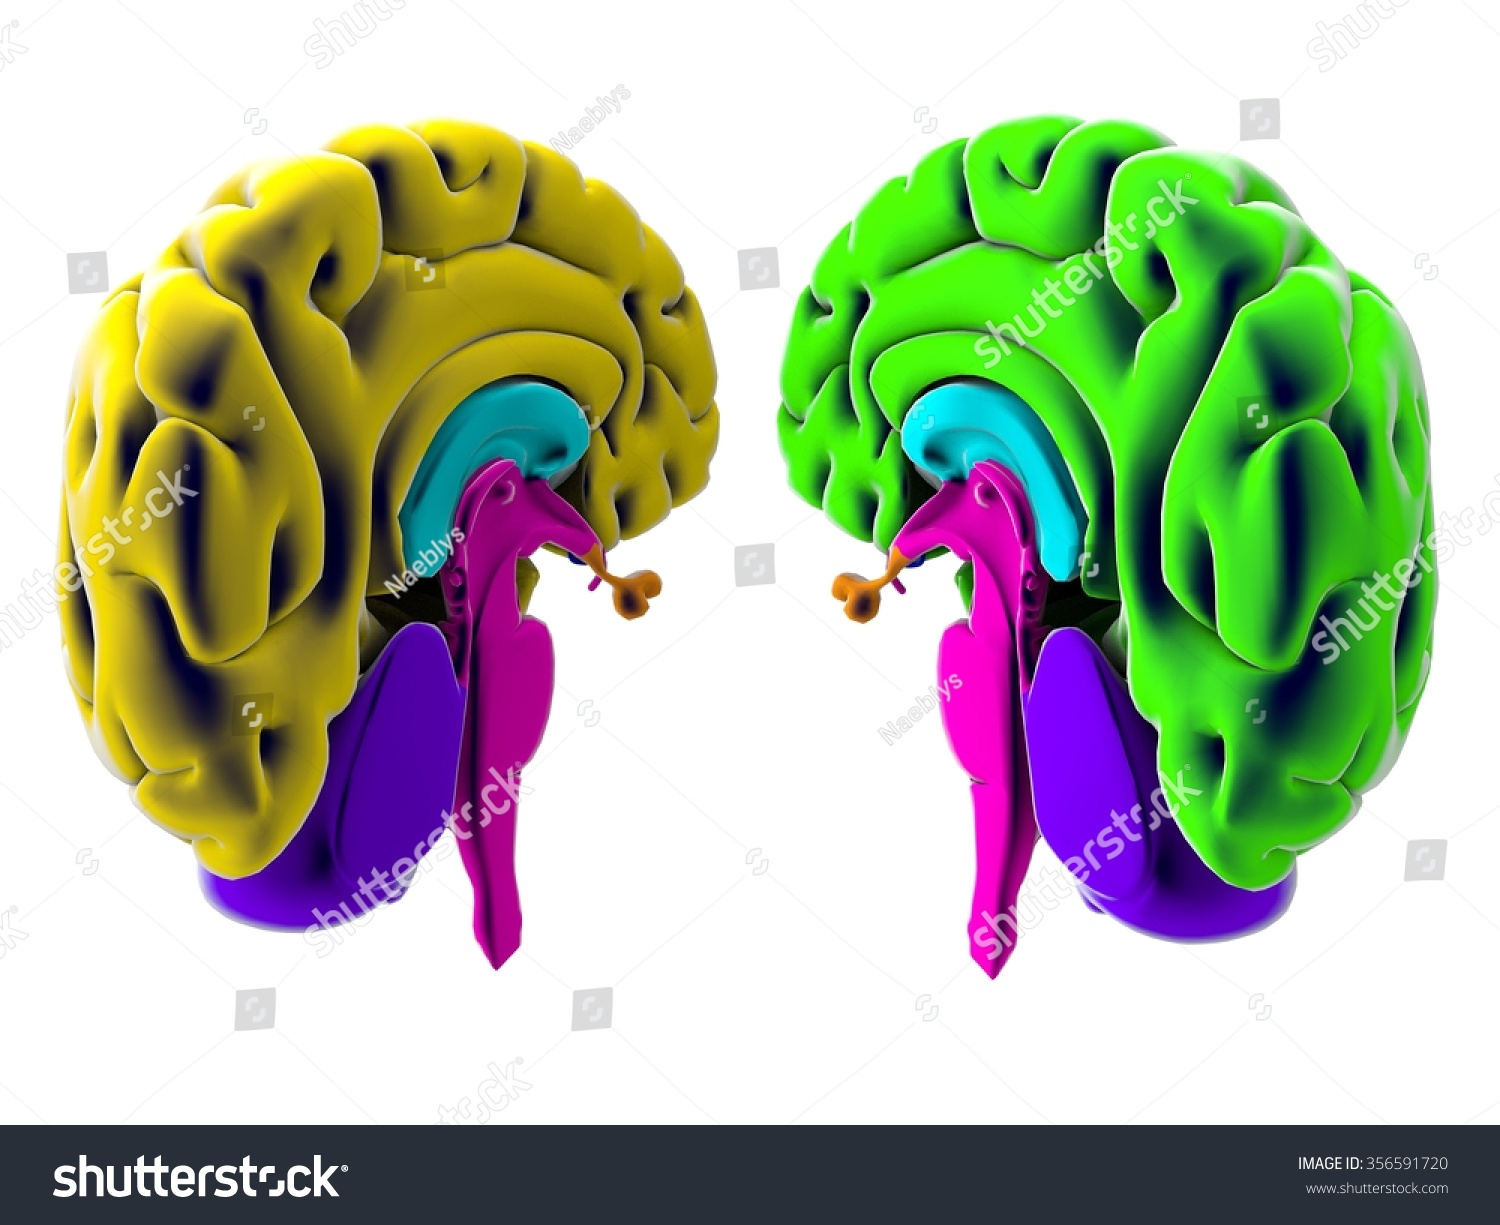 Brain Section Division Cutting Parts Anatomy Stock Illustration ...